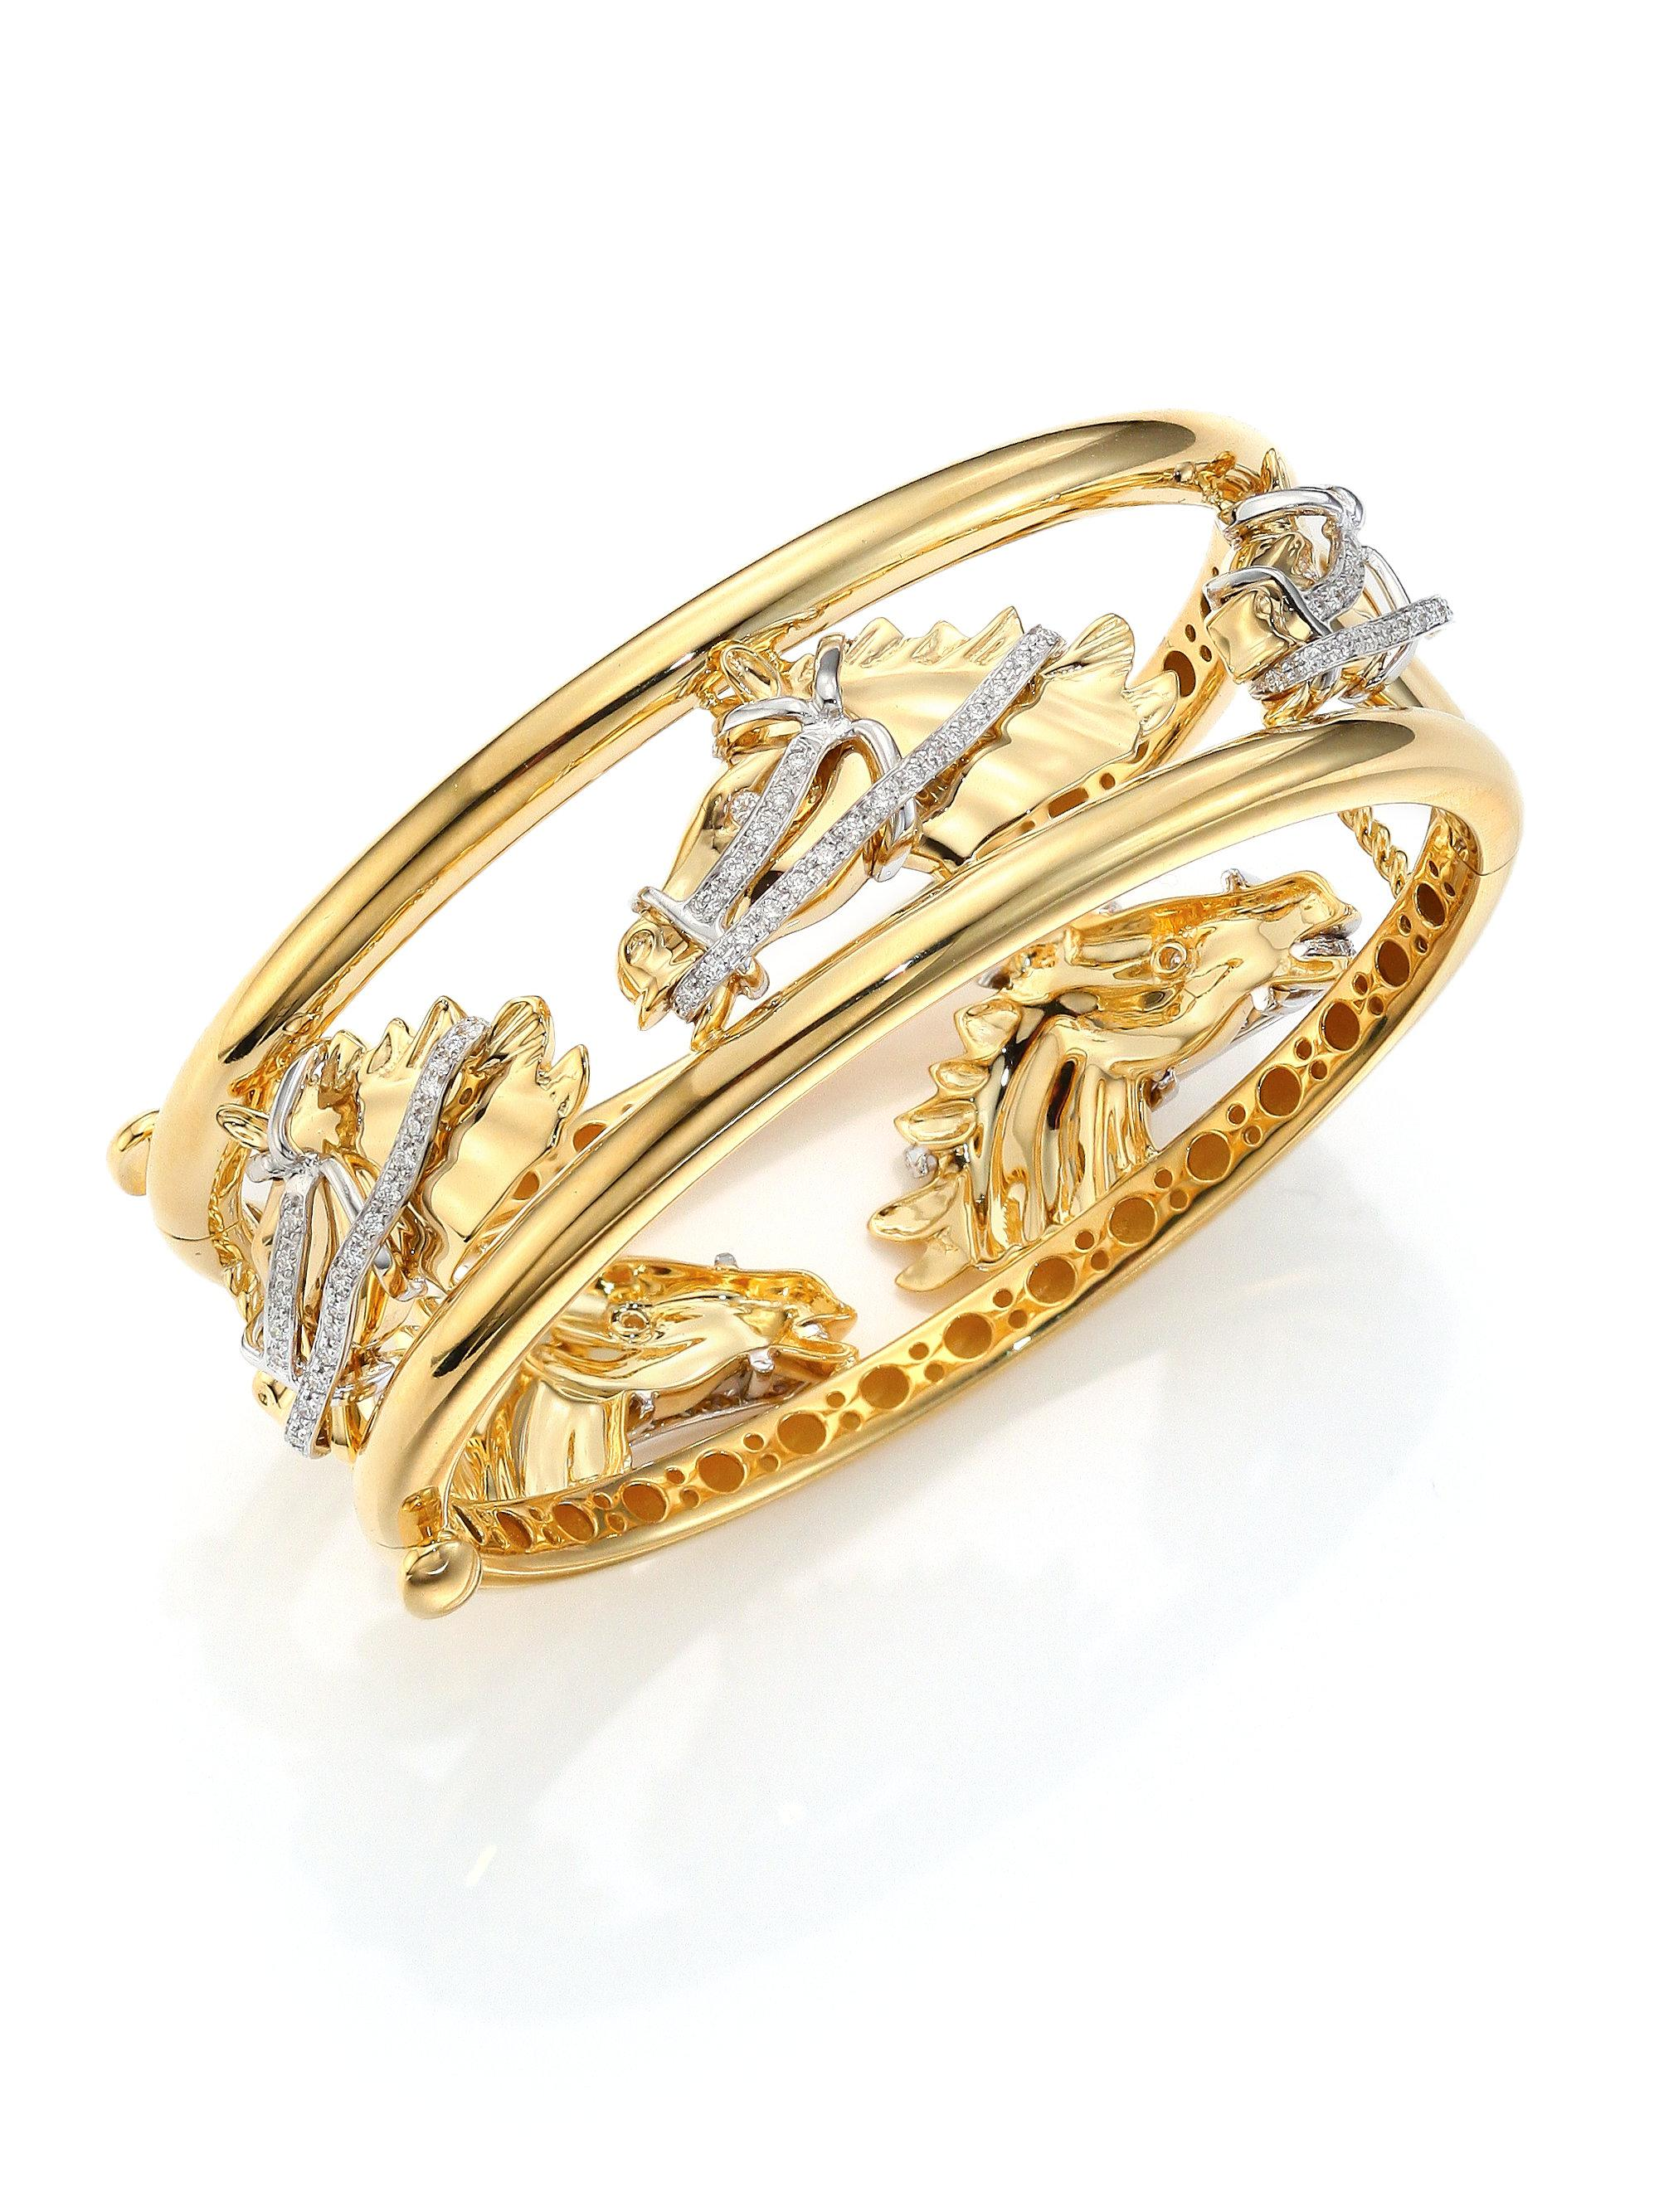 bangles in bracelet oval image gold round bangle and yellow sapphire diamond